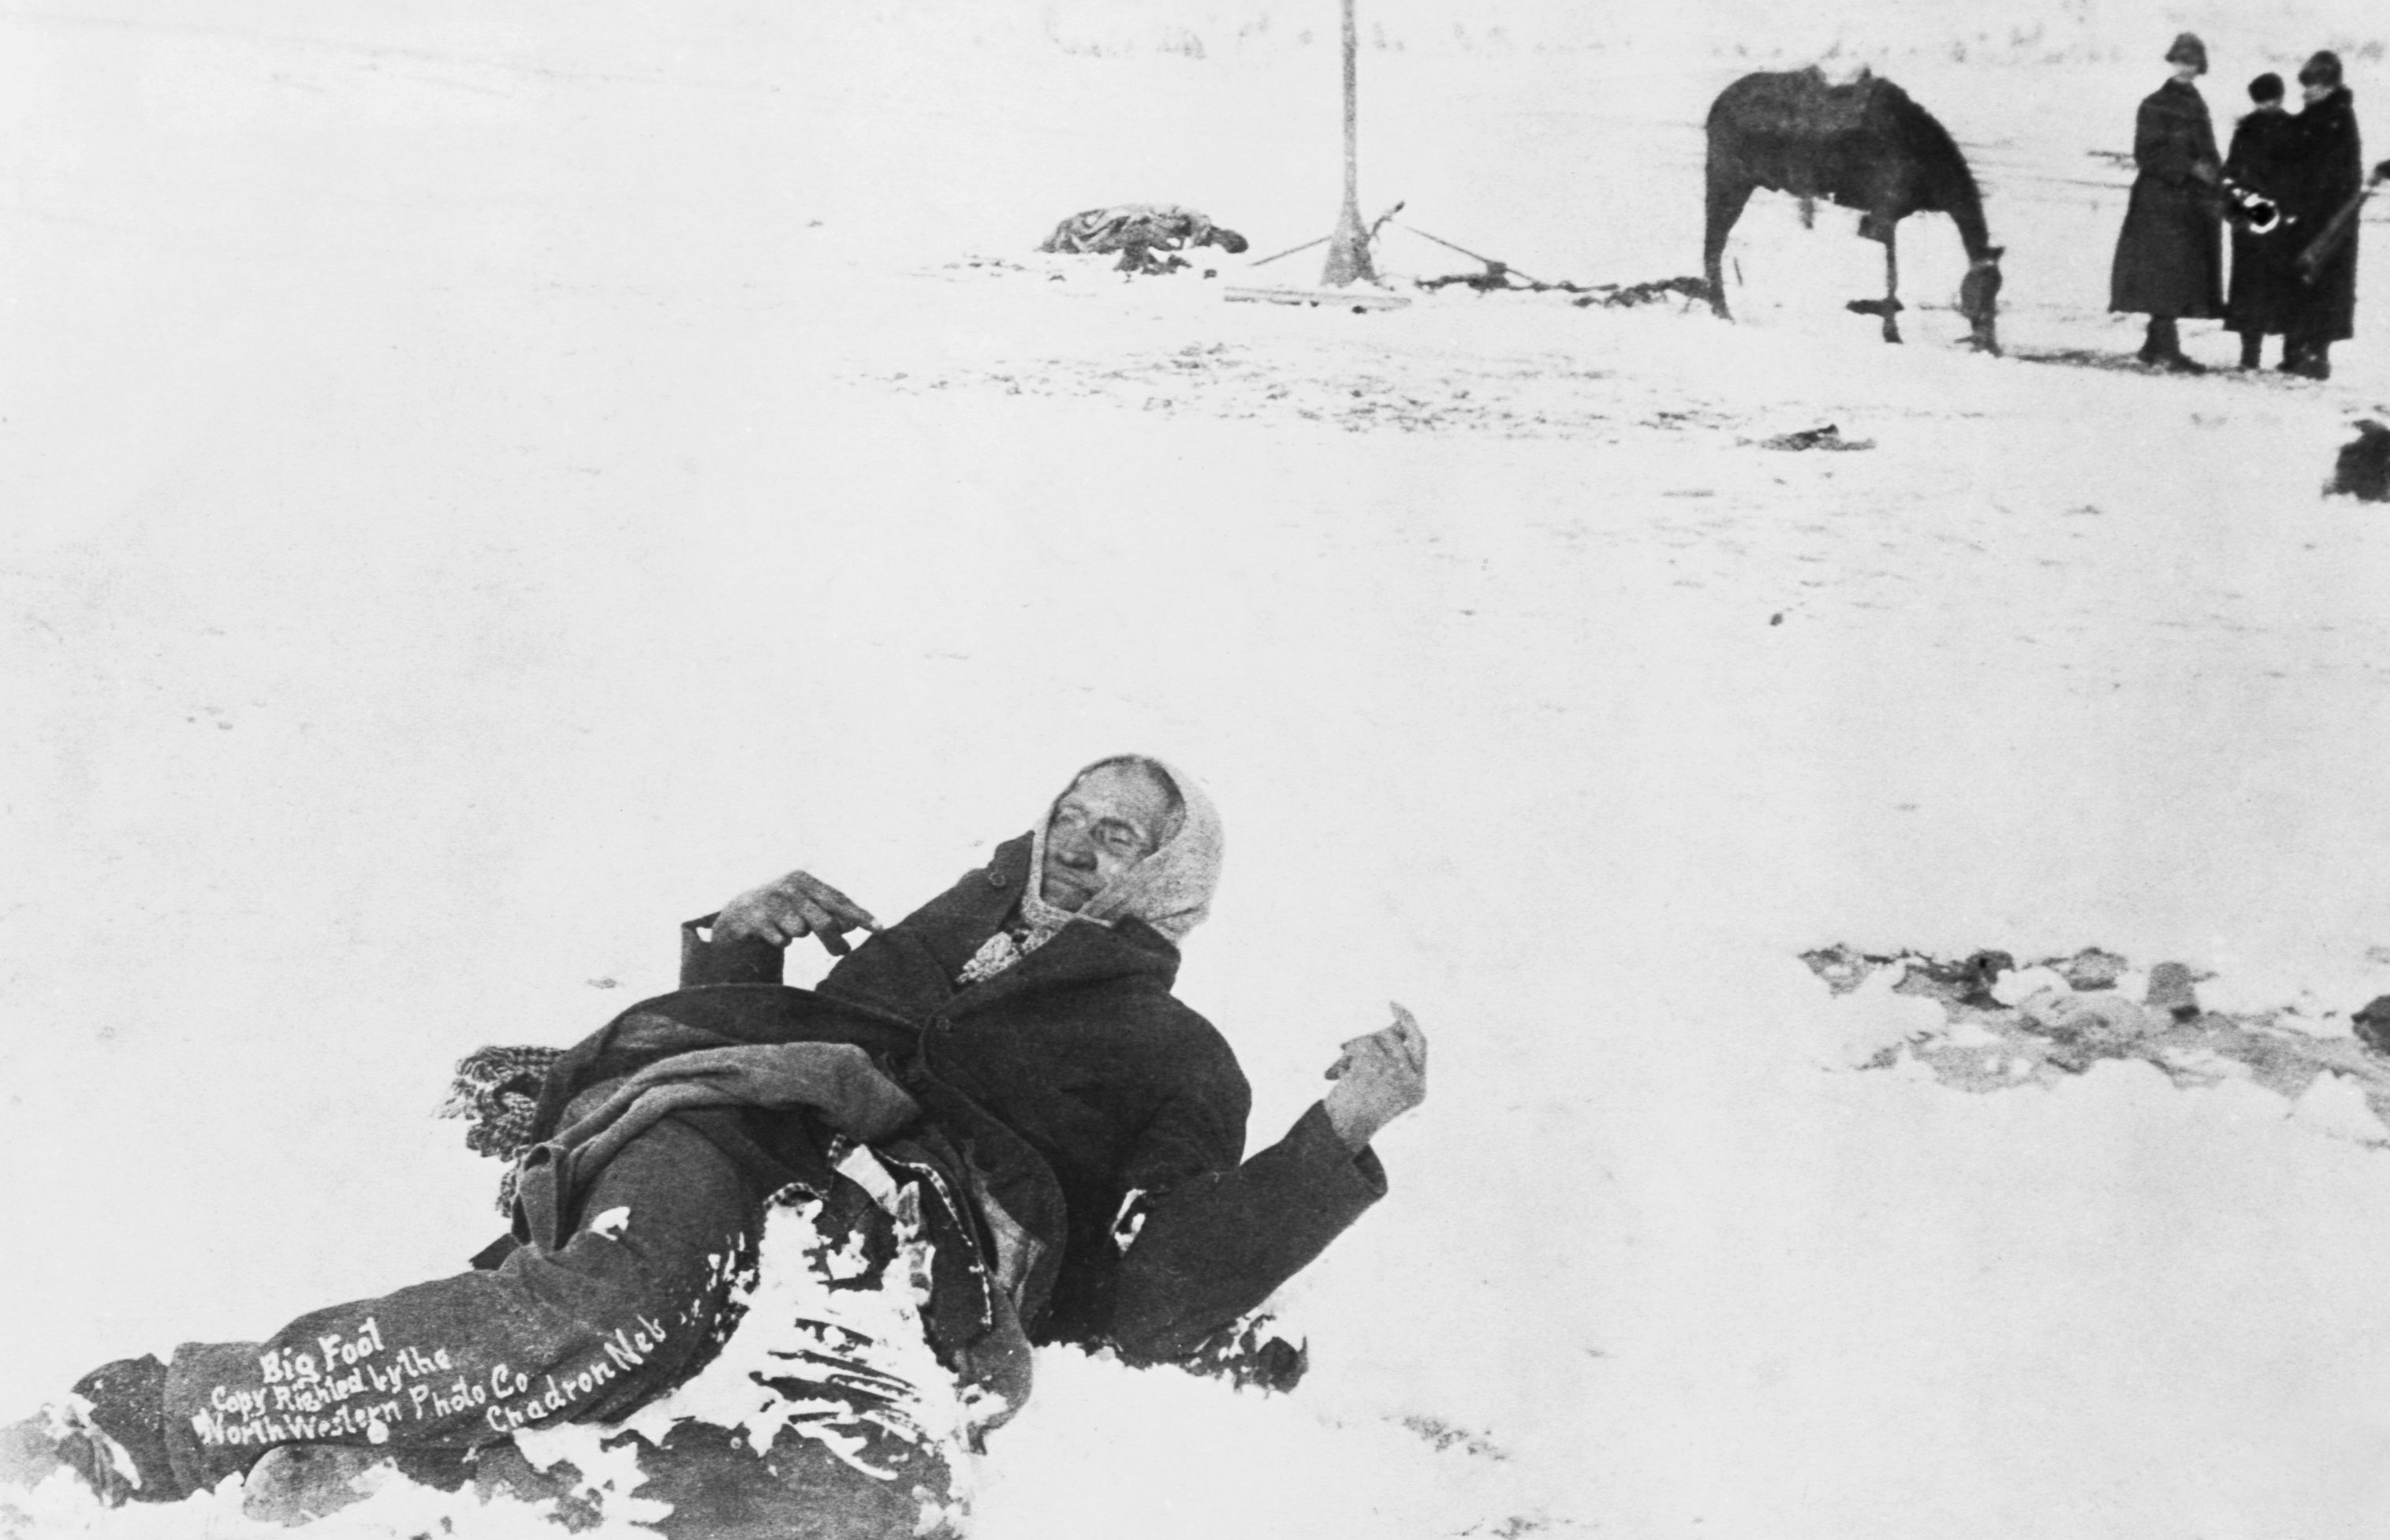 the battle at wounded knee Except it wasn't a battle it was a massacre  the united states government that led to the army's being at wounded knee in 1890 doubtless can be characterized as unjust, unwise, or worse.